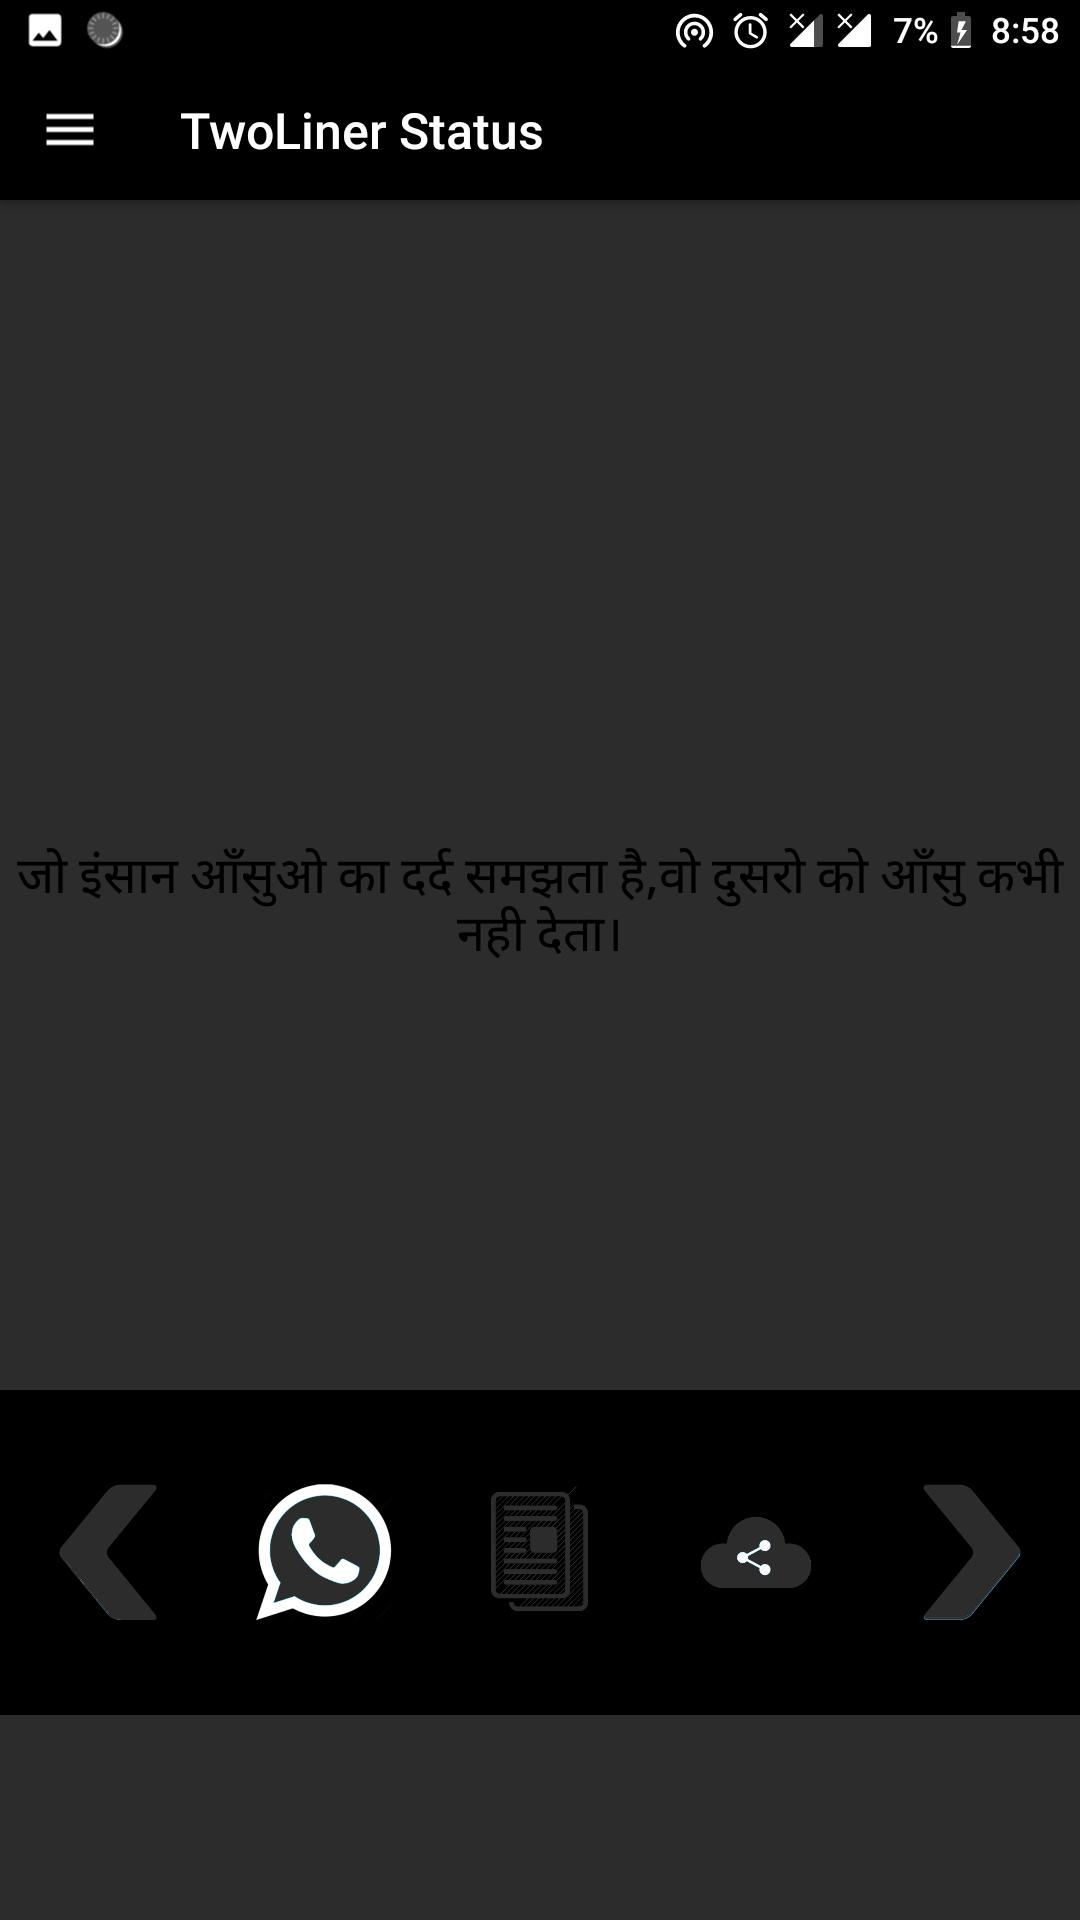 Two Line Shayari Status In Hindi 2018 for Android - APK Download